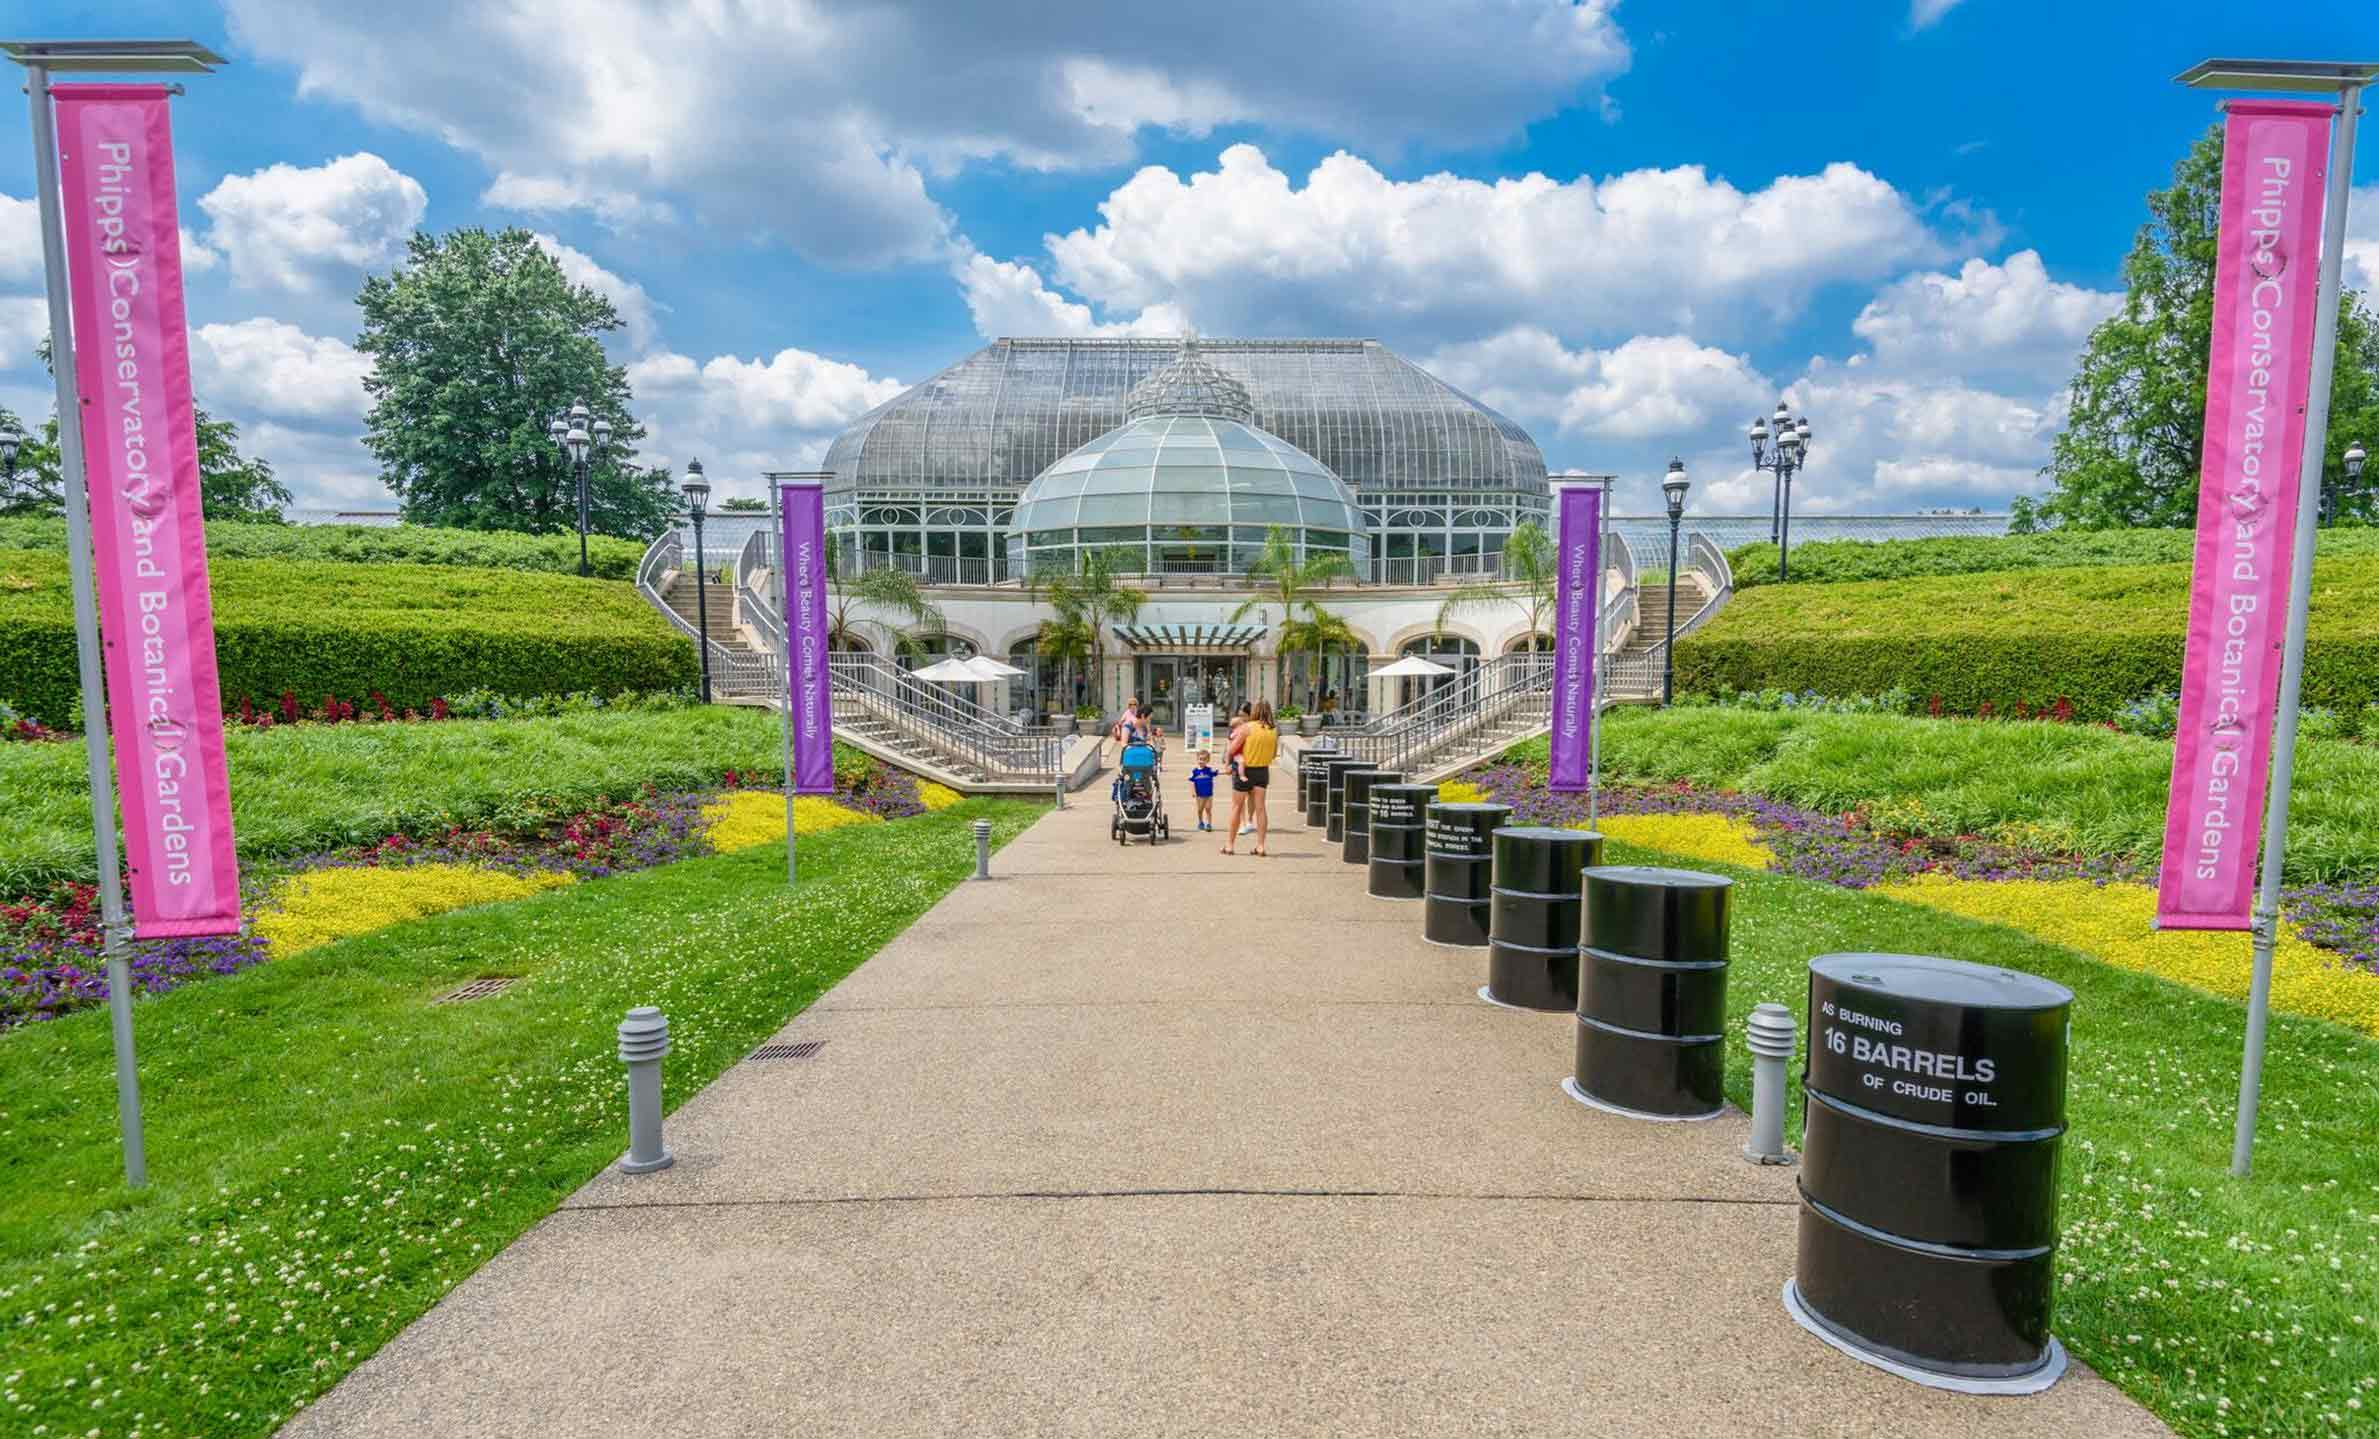 In a new display at Phipps' entrance, 16 oil barrels in a line show visitors the amount of CO2 they can prevent from being released into the atmosphere by switching to renewable energy.